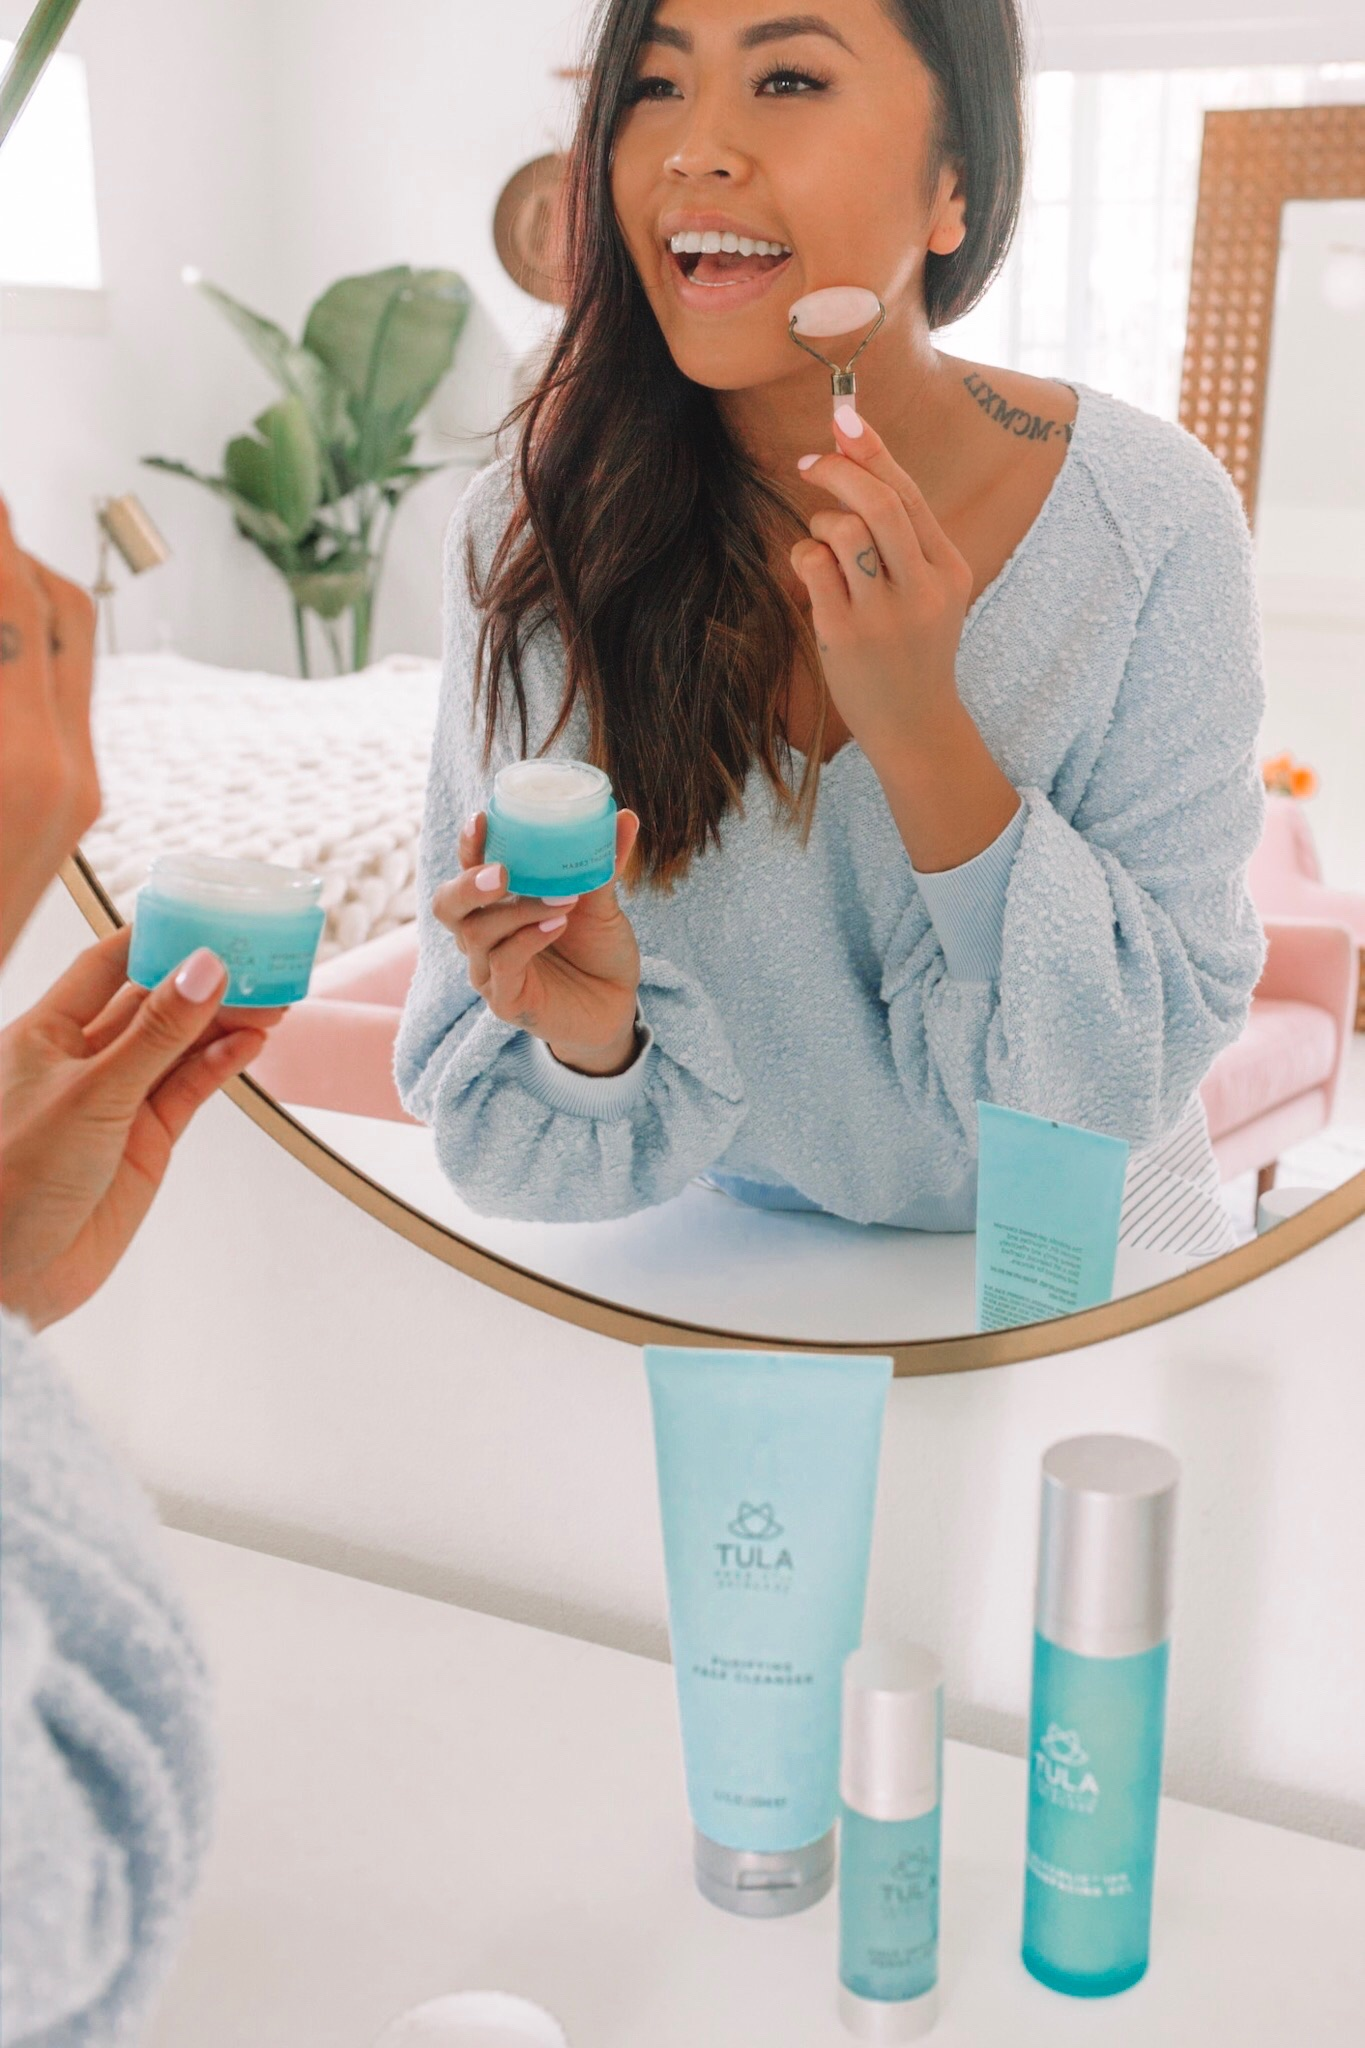 My Skincare Routine for Acne Prone Skin - Tula Reviews +